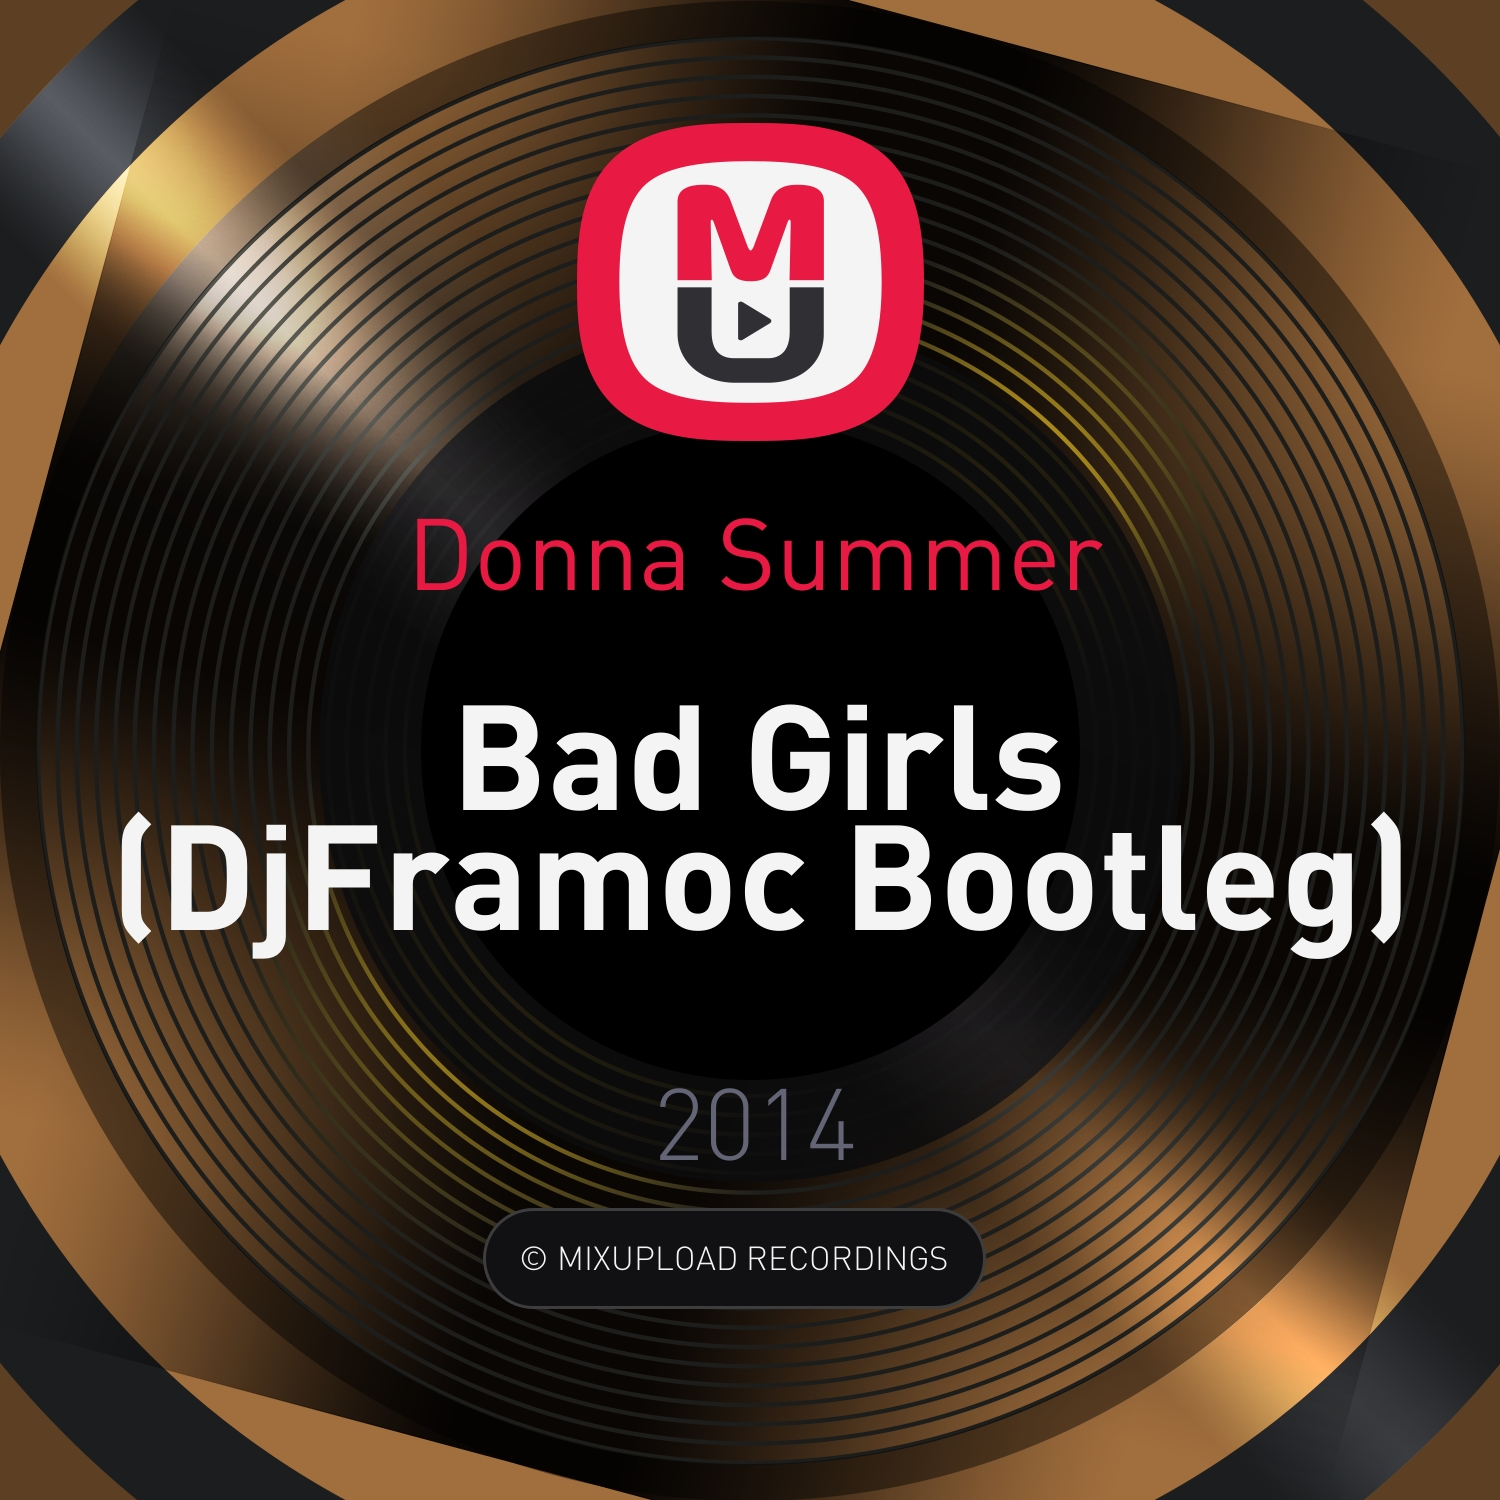 Donna Summer - Bad Girls (DjFramoc Bootleg 2k14)